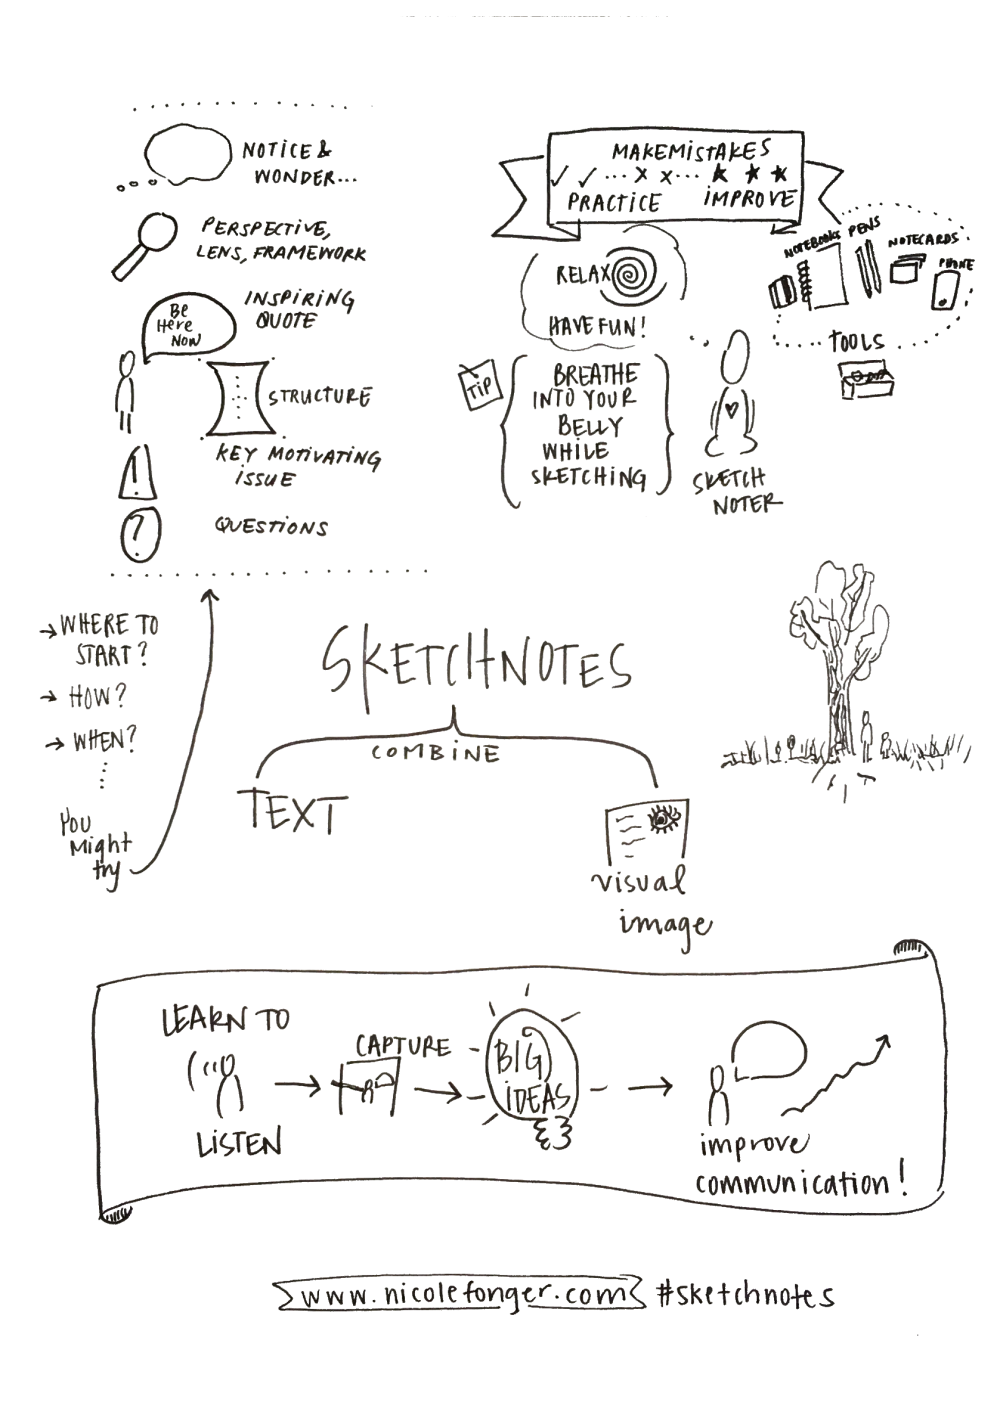 Sketchnotes combine text and image to convey ideas.